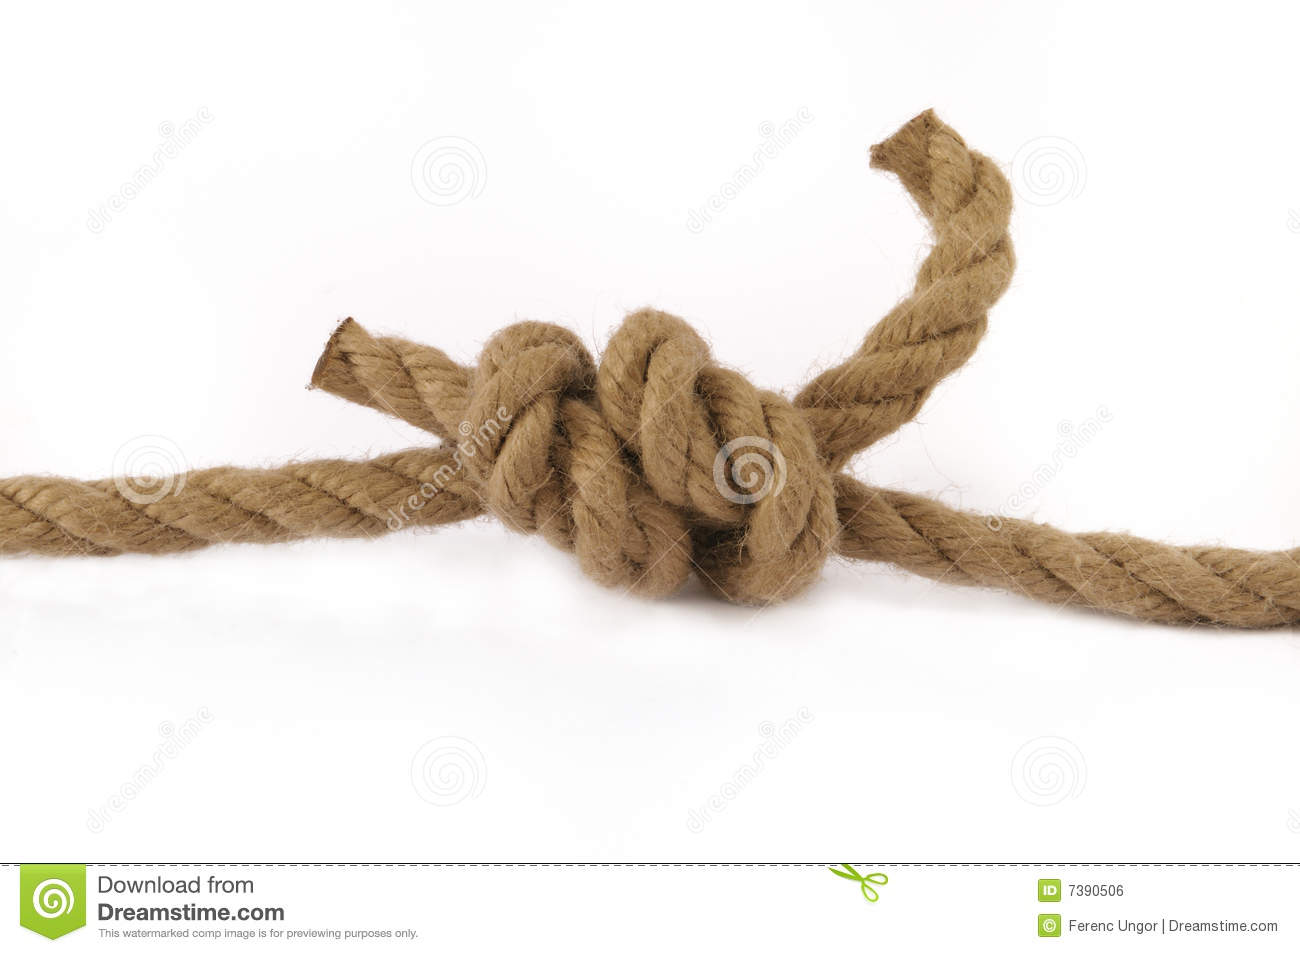 how to connect two ropes together